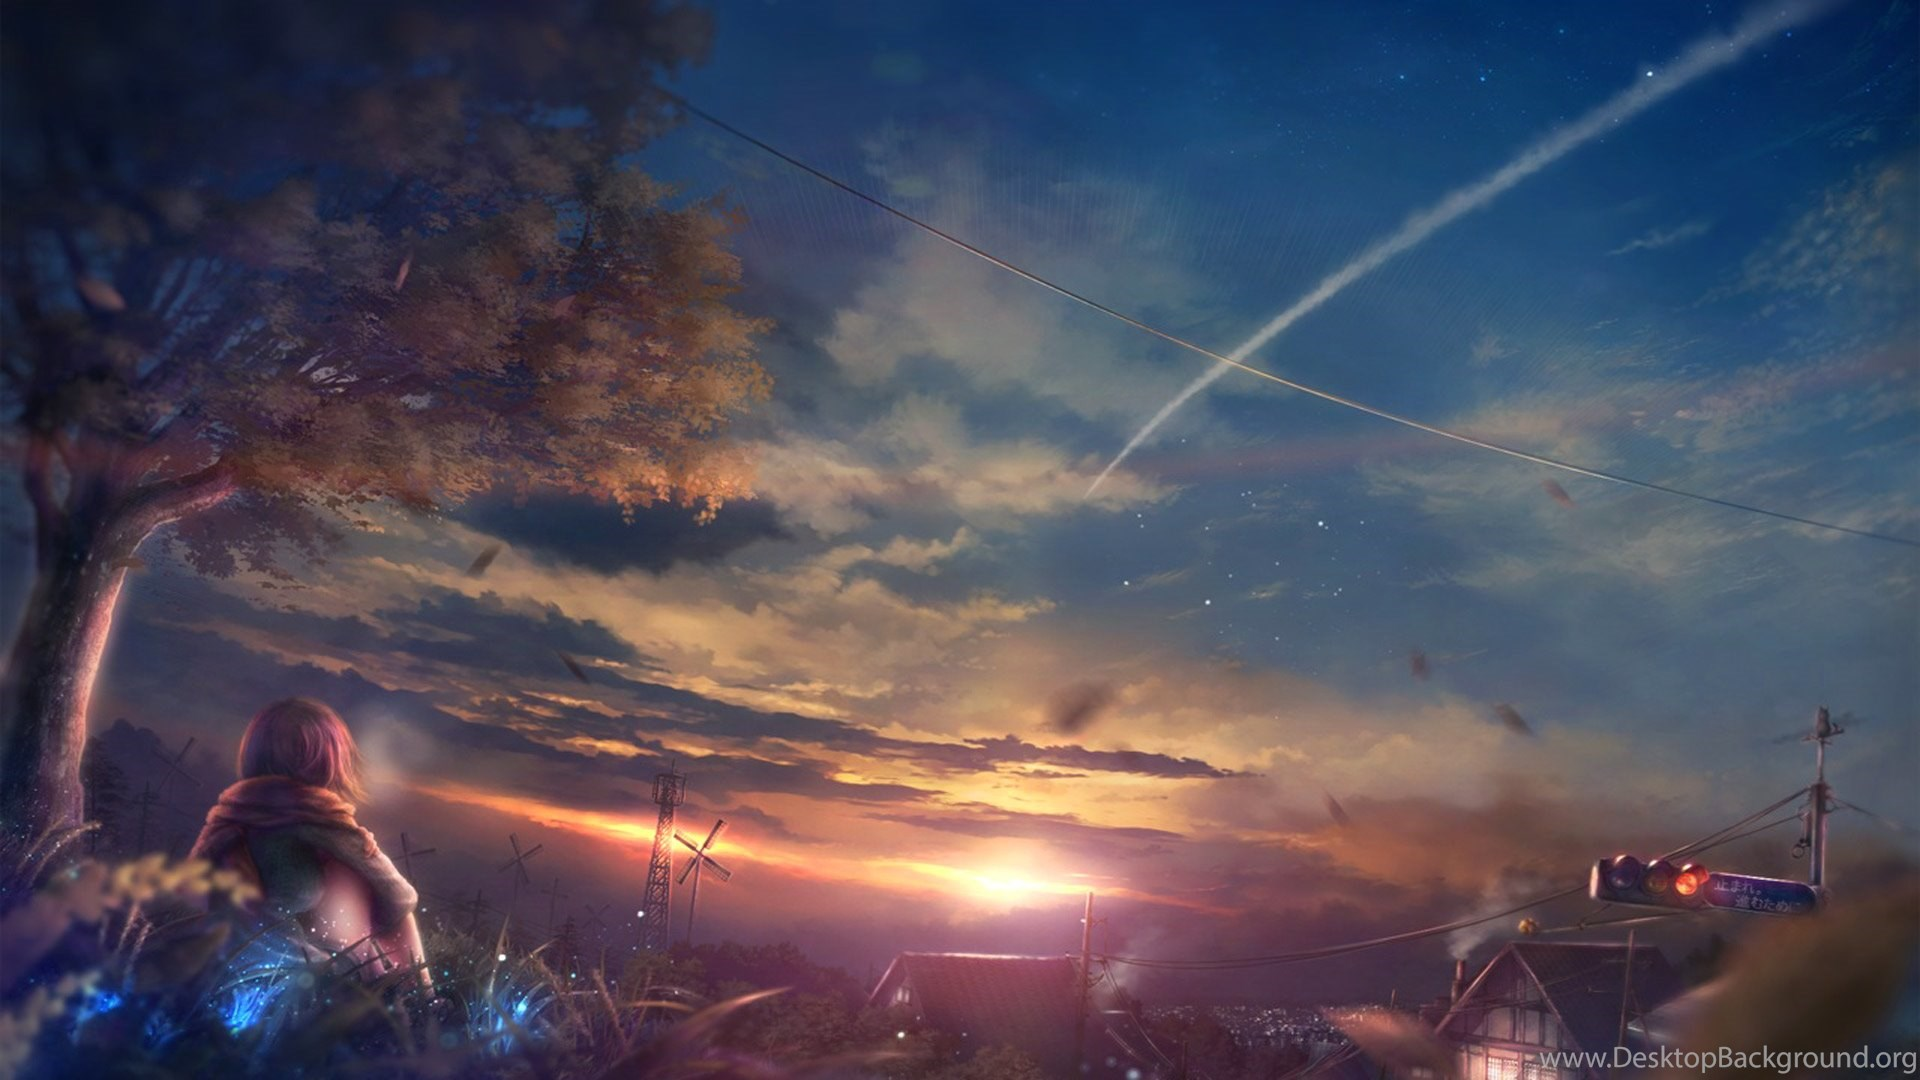 beautiful scenery anime girl at sunset wallpapers desktop